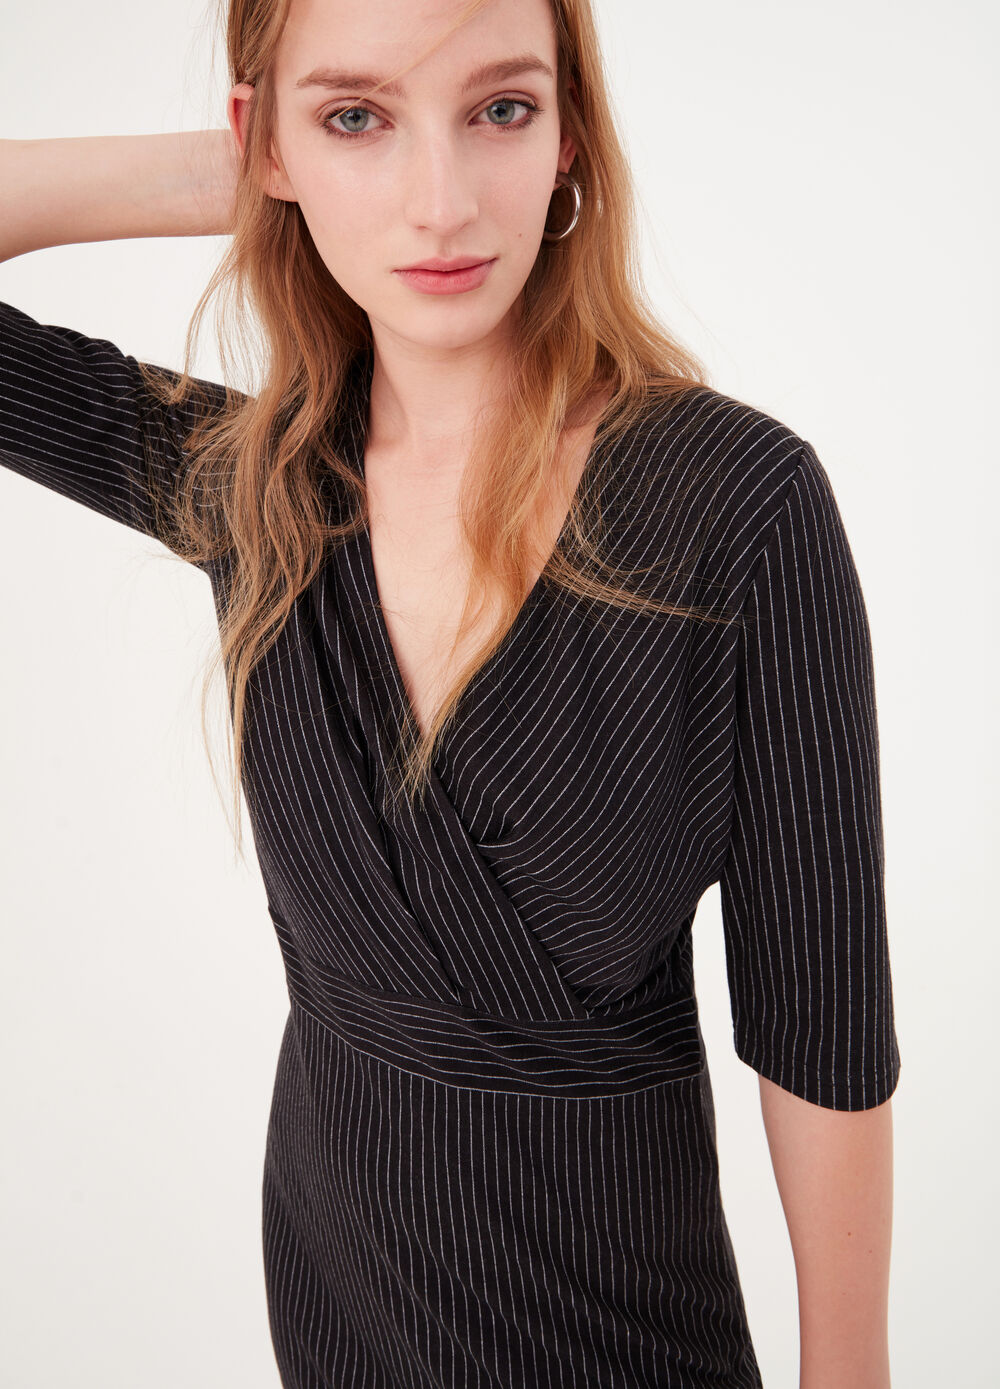 Crossover dress in pinstripe knit fabric